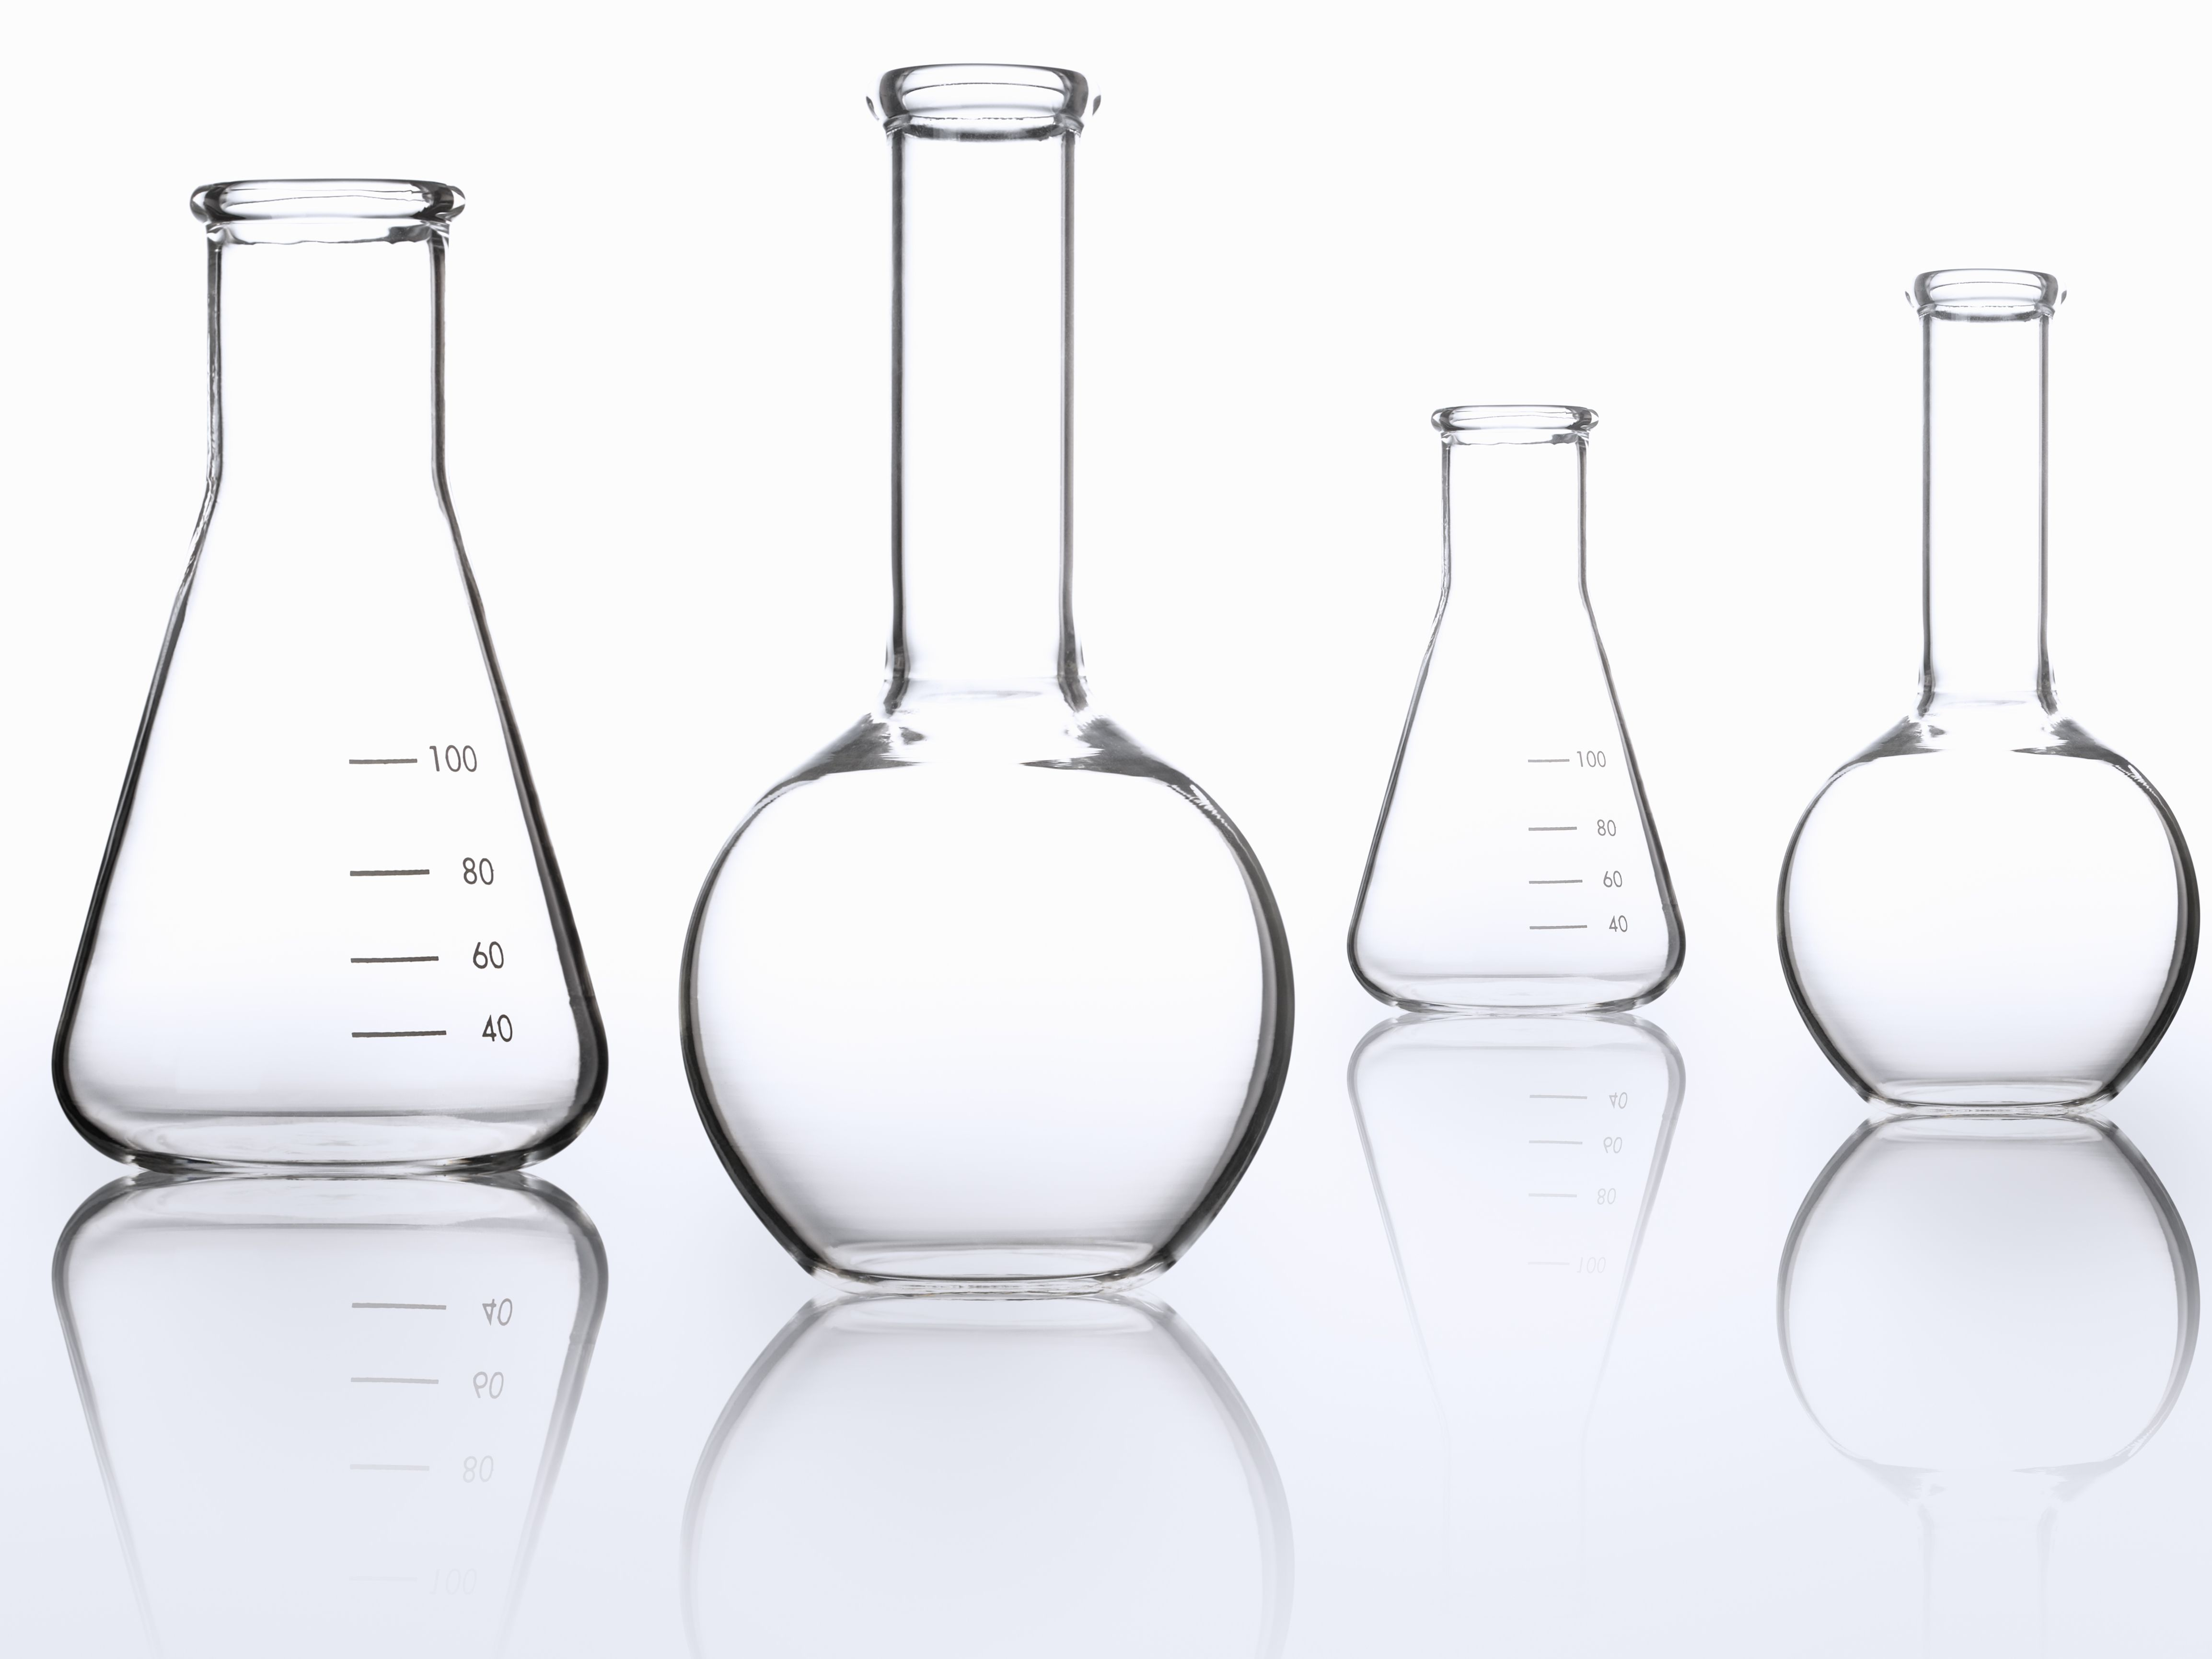 Lab Glassware Names and Uses